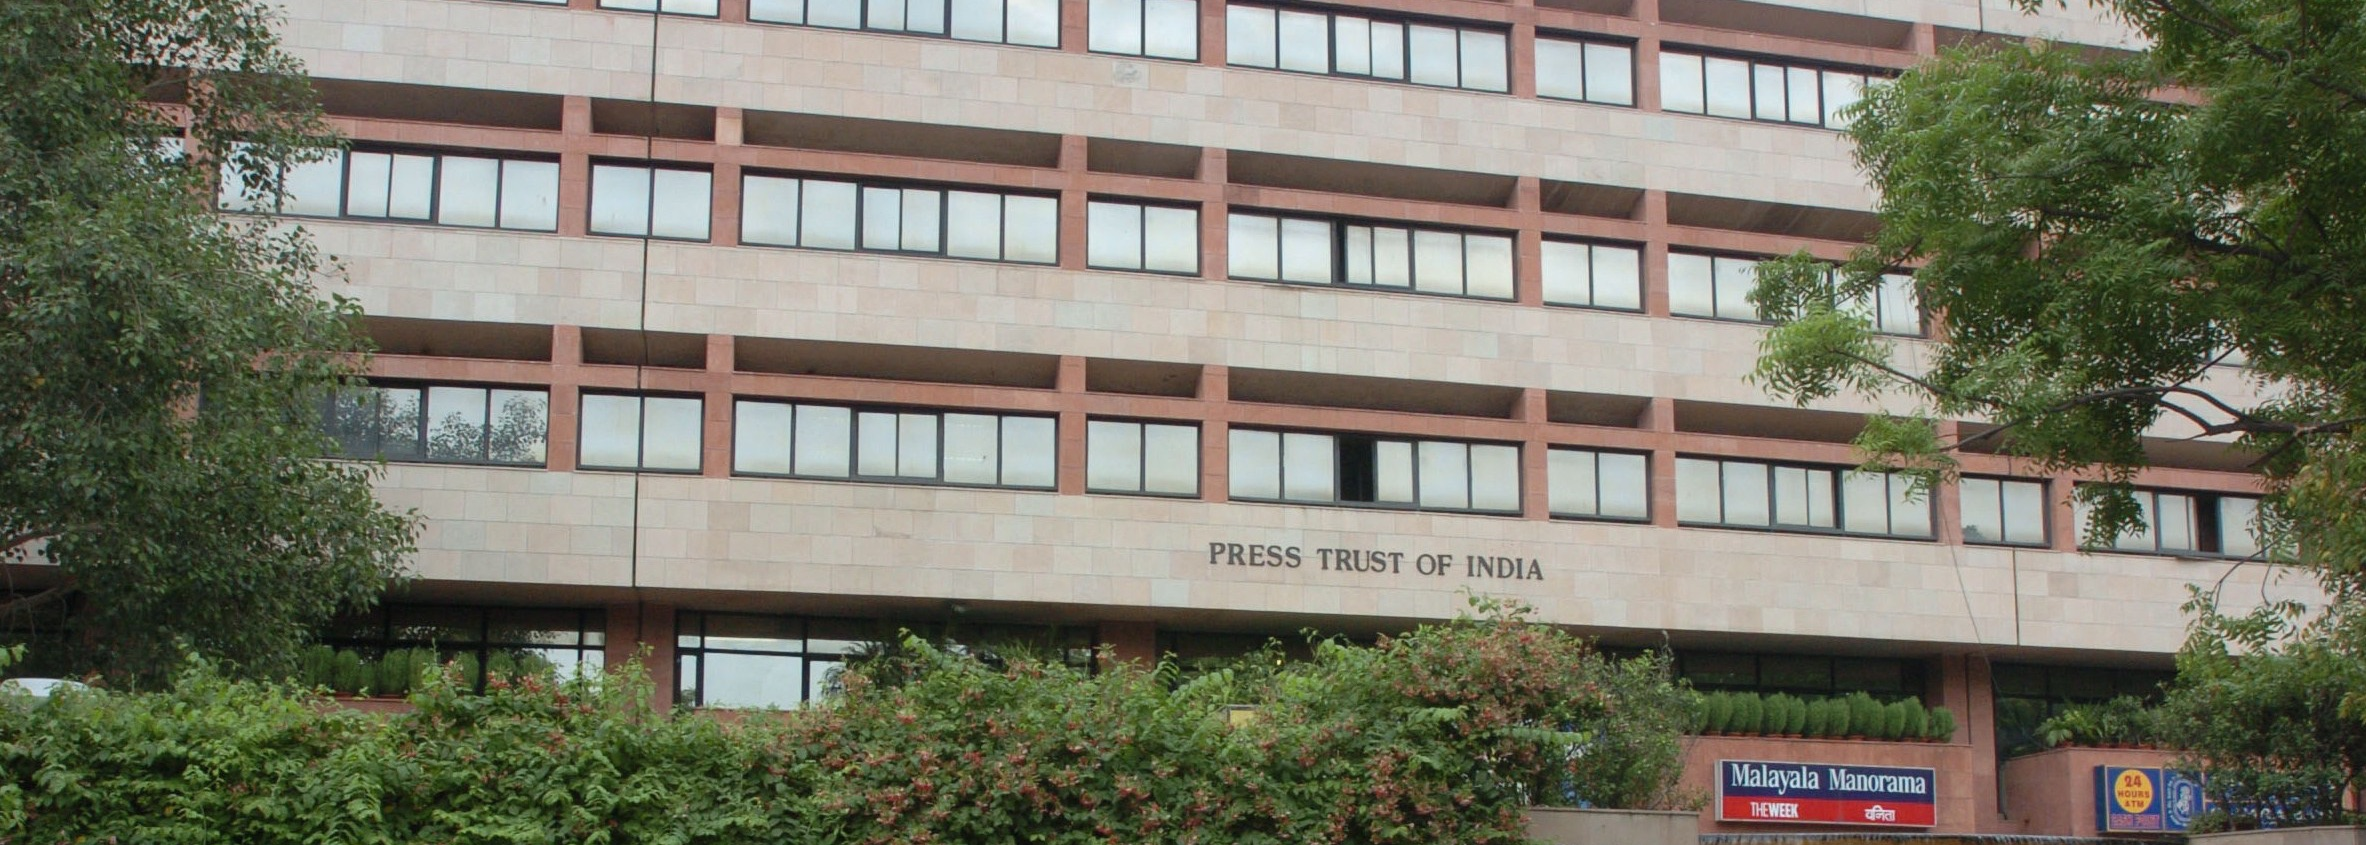 Prasar Bharati Patronage May Be Latest Sarkari Boost to RSS-Backed News Agency